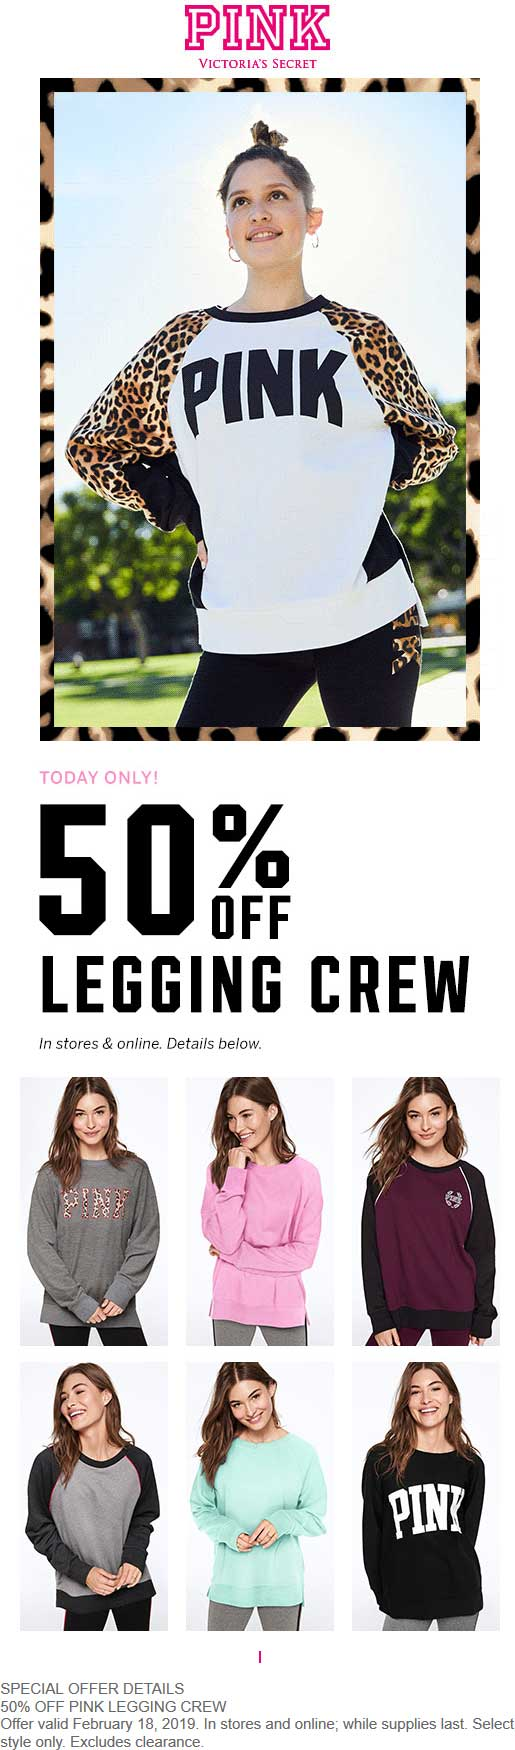 PINK Coupon July 2019 50% off legging crew today at Victorias Secret PINK, ditto online